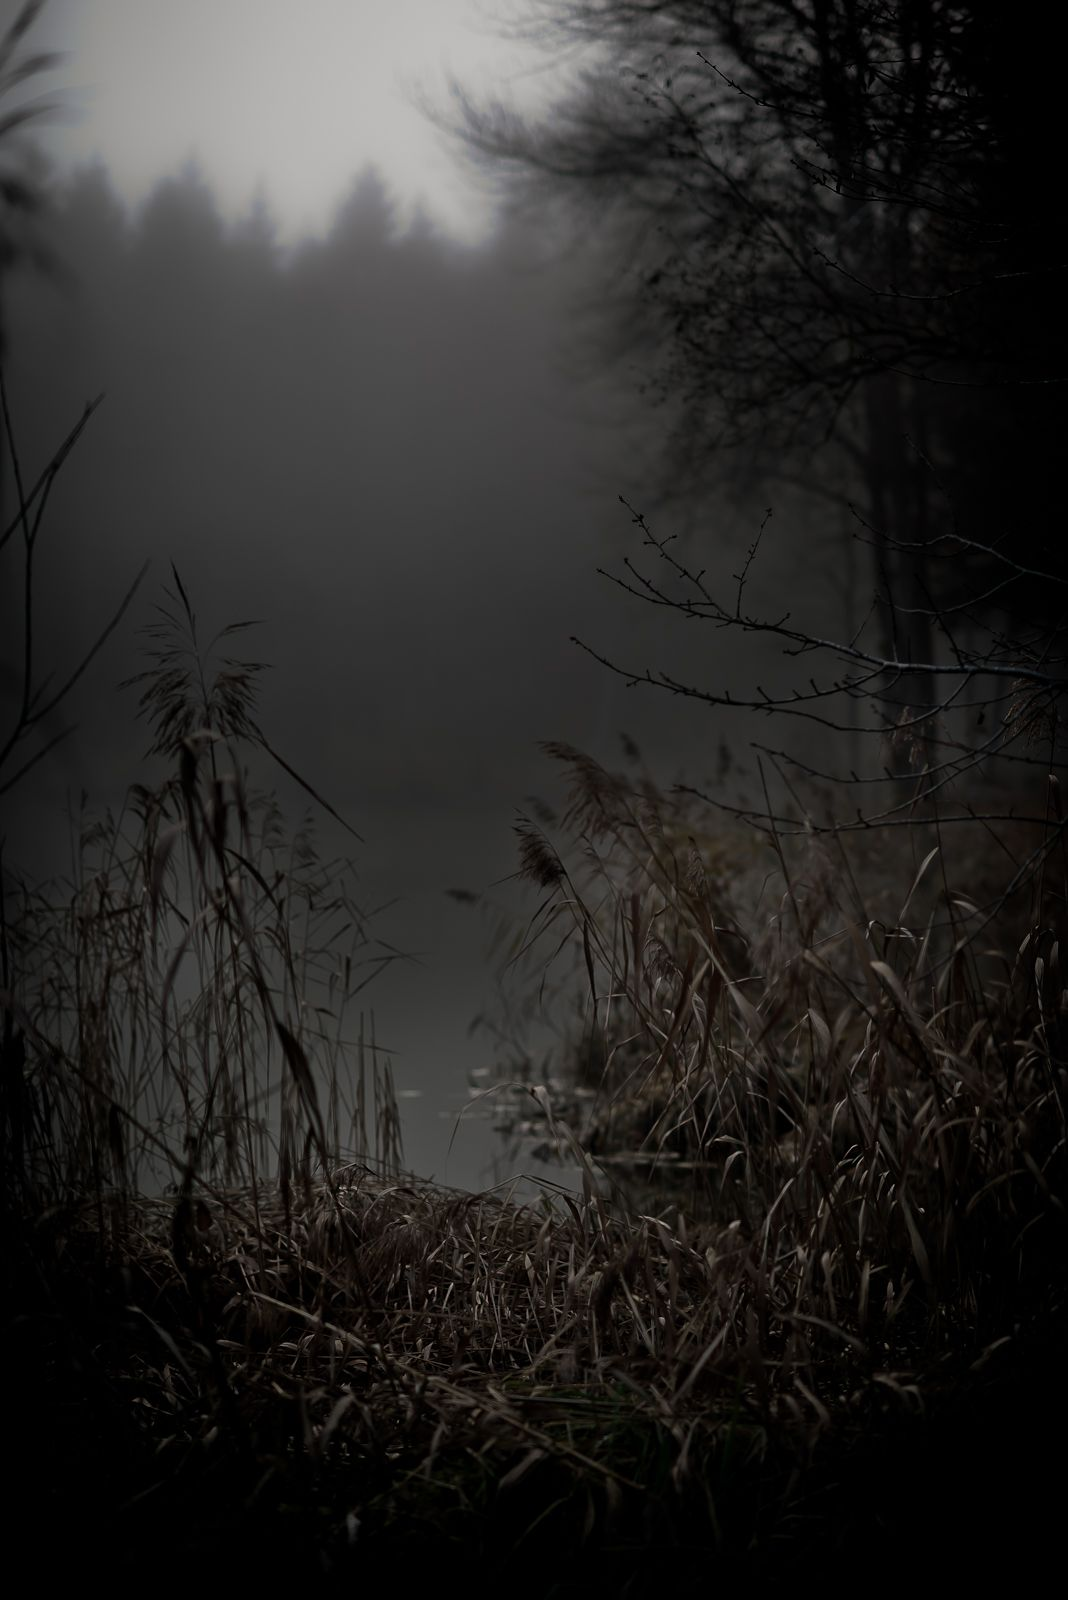 Season Of The Witch A Southern Gothic Tale Sense Of Place Autumn Photography Dark Autumn